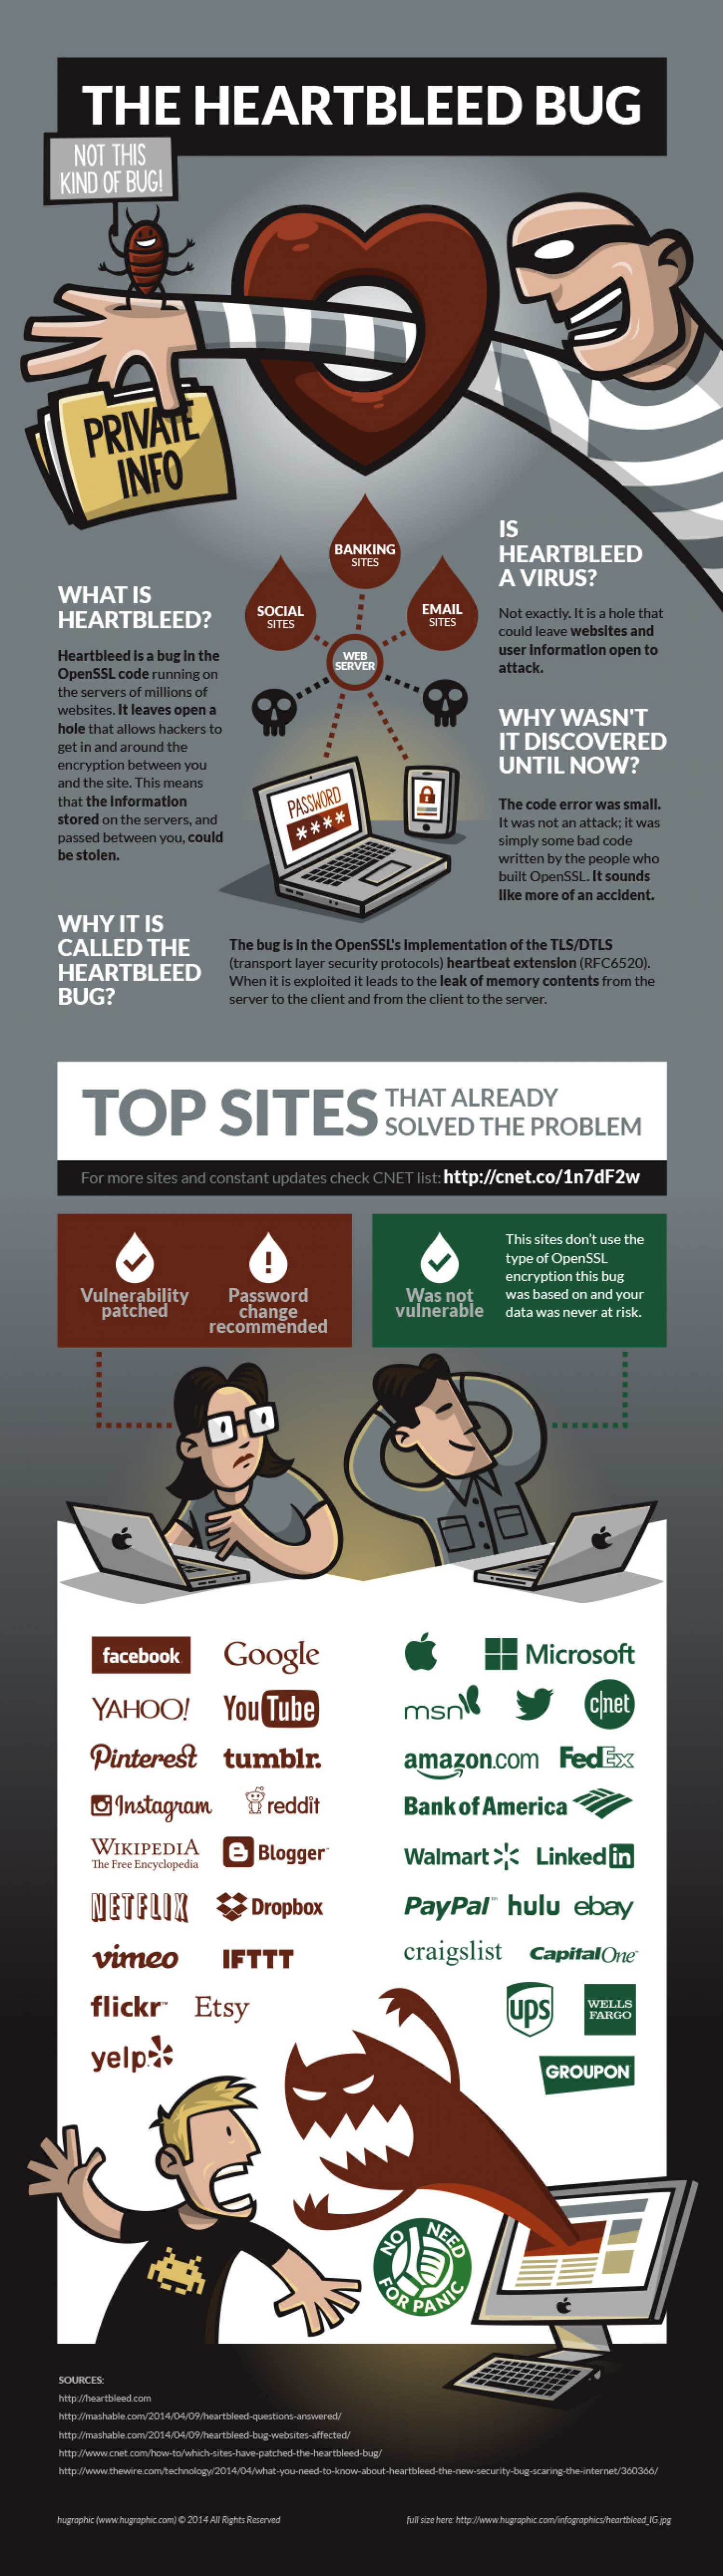 The Heartbleed Bug Infographic